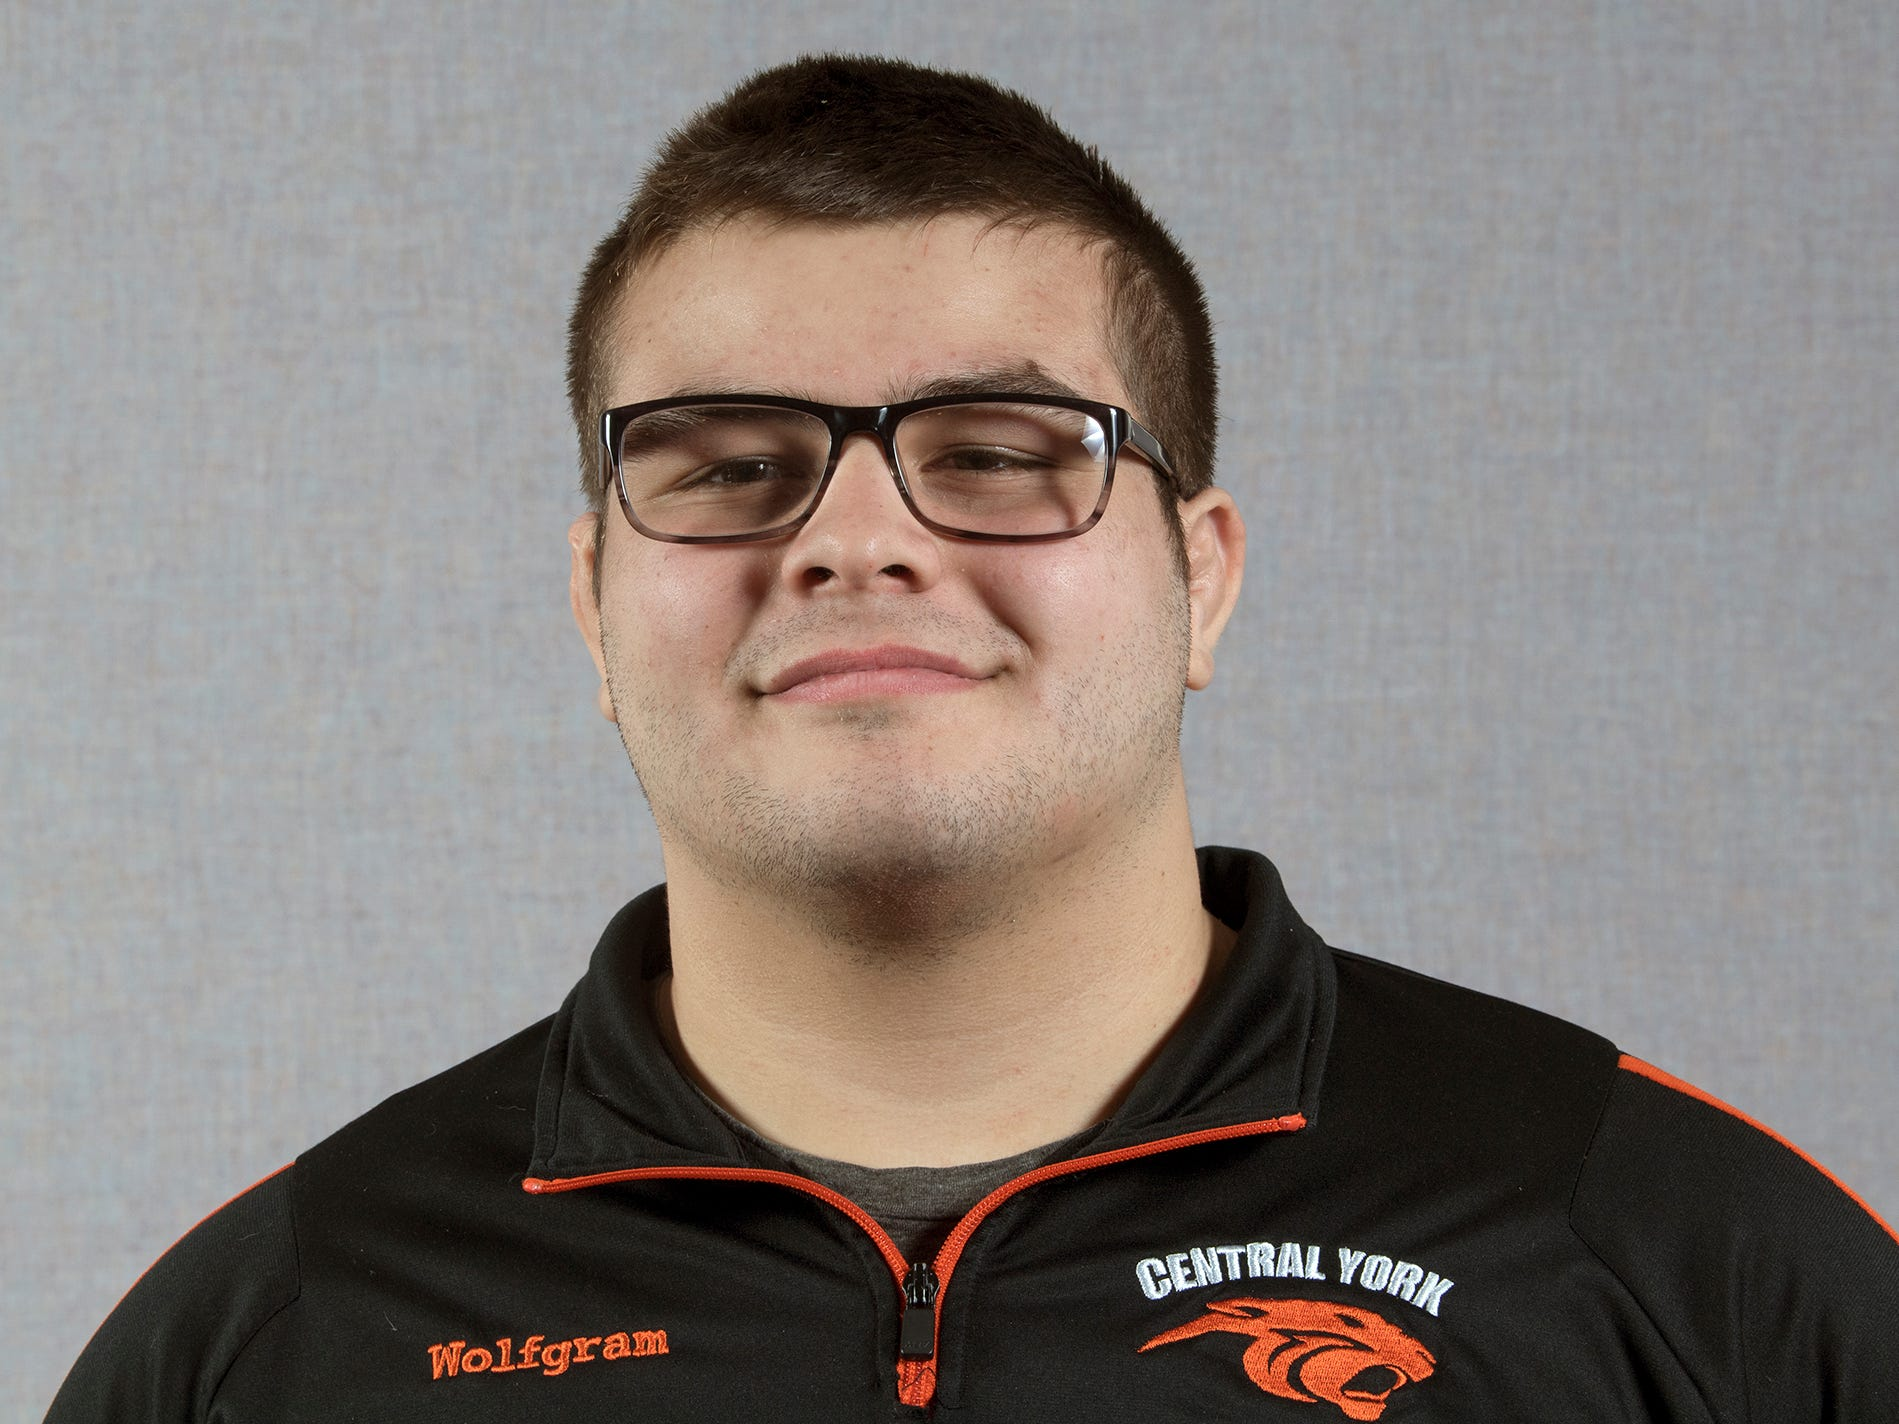 Michael Wolfgram, of the Central York wrestling team, during the 2018-19 GameTimePa YAIAA Winter Media Day Sunday November 11, 2018.